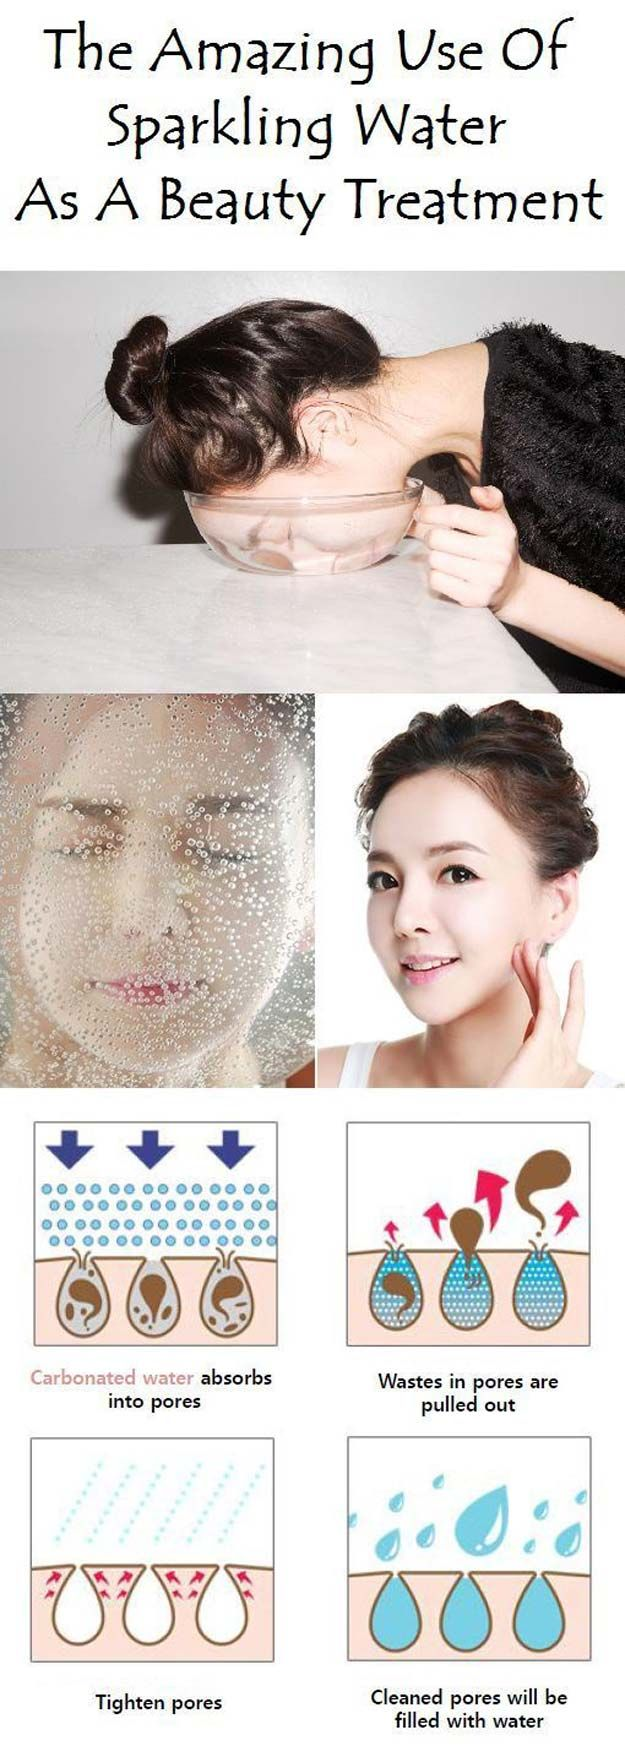 Best Beauty Hacks - Wash Face with Sparkling Water - Easy Makeup Tutorials and Makeup Ideas for Teens, Beginners, Women, Teenagers - Cool Tips and Tricks for Mascara, Lipstick, Foundation, Hair, Blush, Eyeshadow, Eyebrows and Eyes - Step by Step Tutorials and How To http://diyprojectsforteens.com/best-beauty-hacks